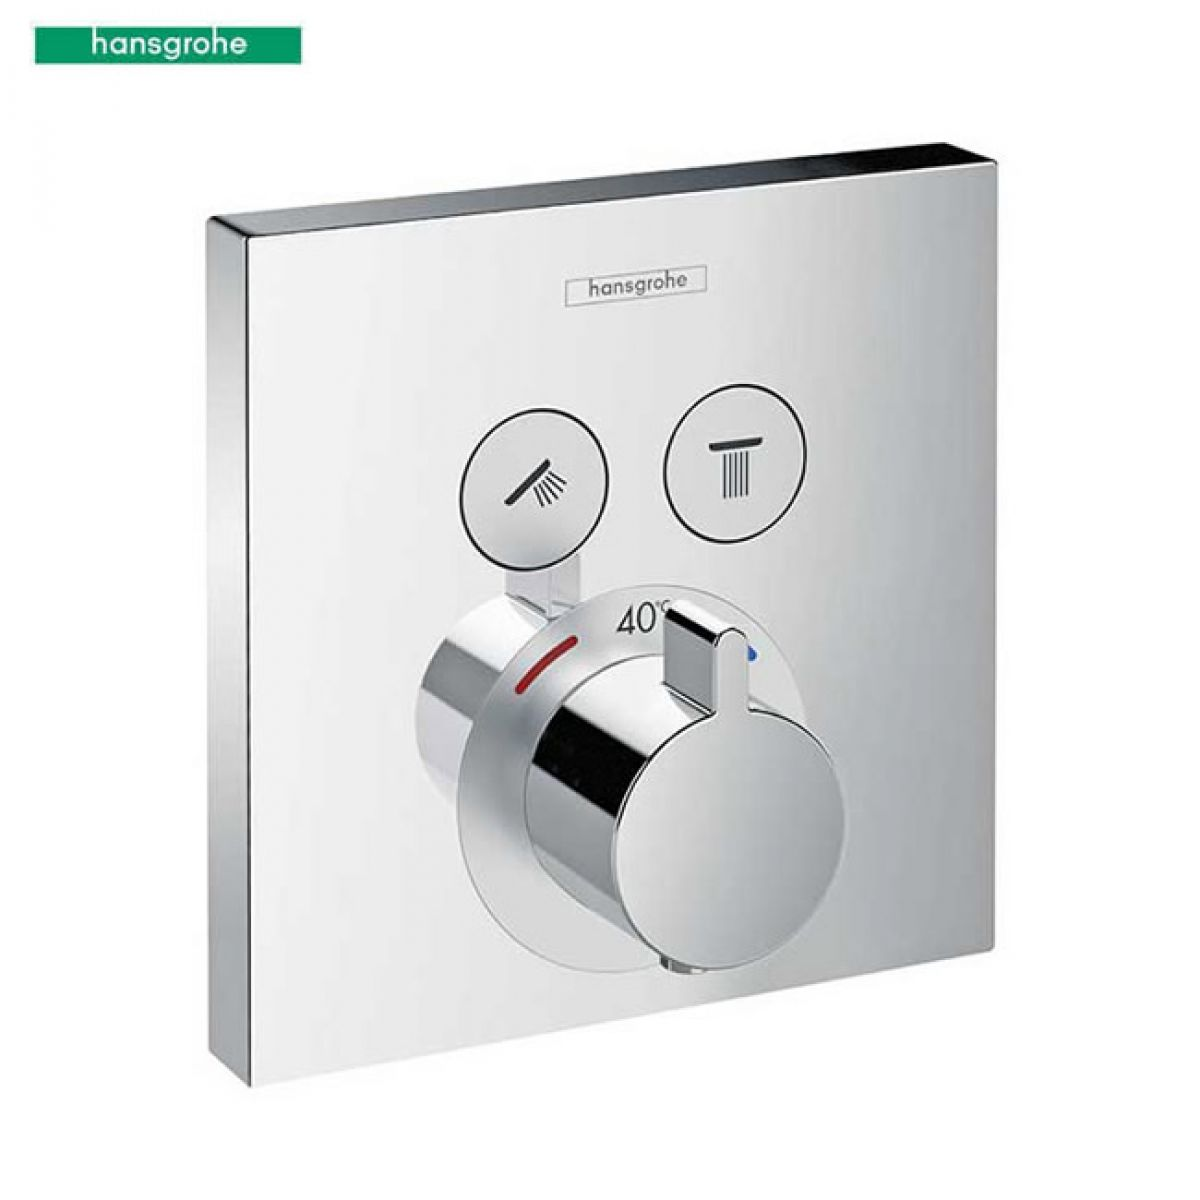 hansgrohe showerselect concealed thermostatic valve. Black Bedroom Furniture Sets. Home Design Ideas